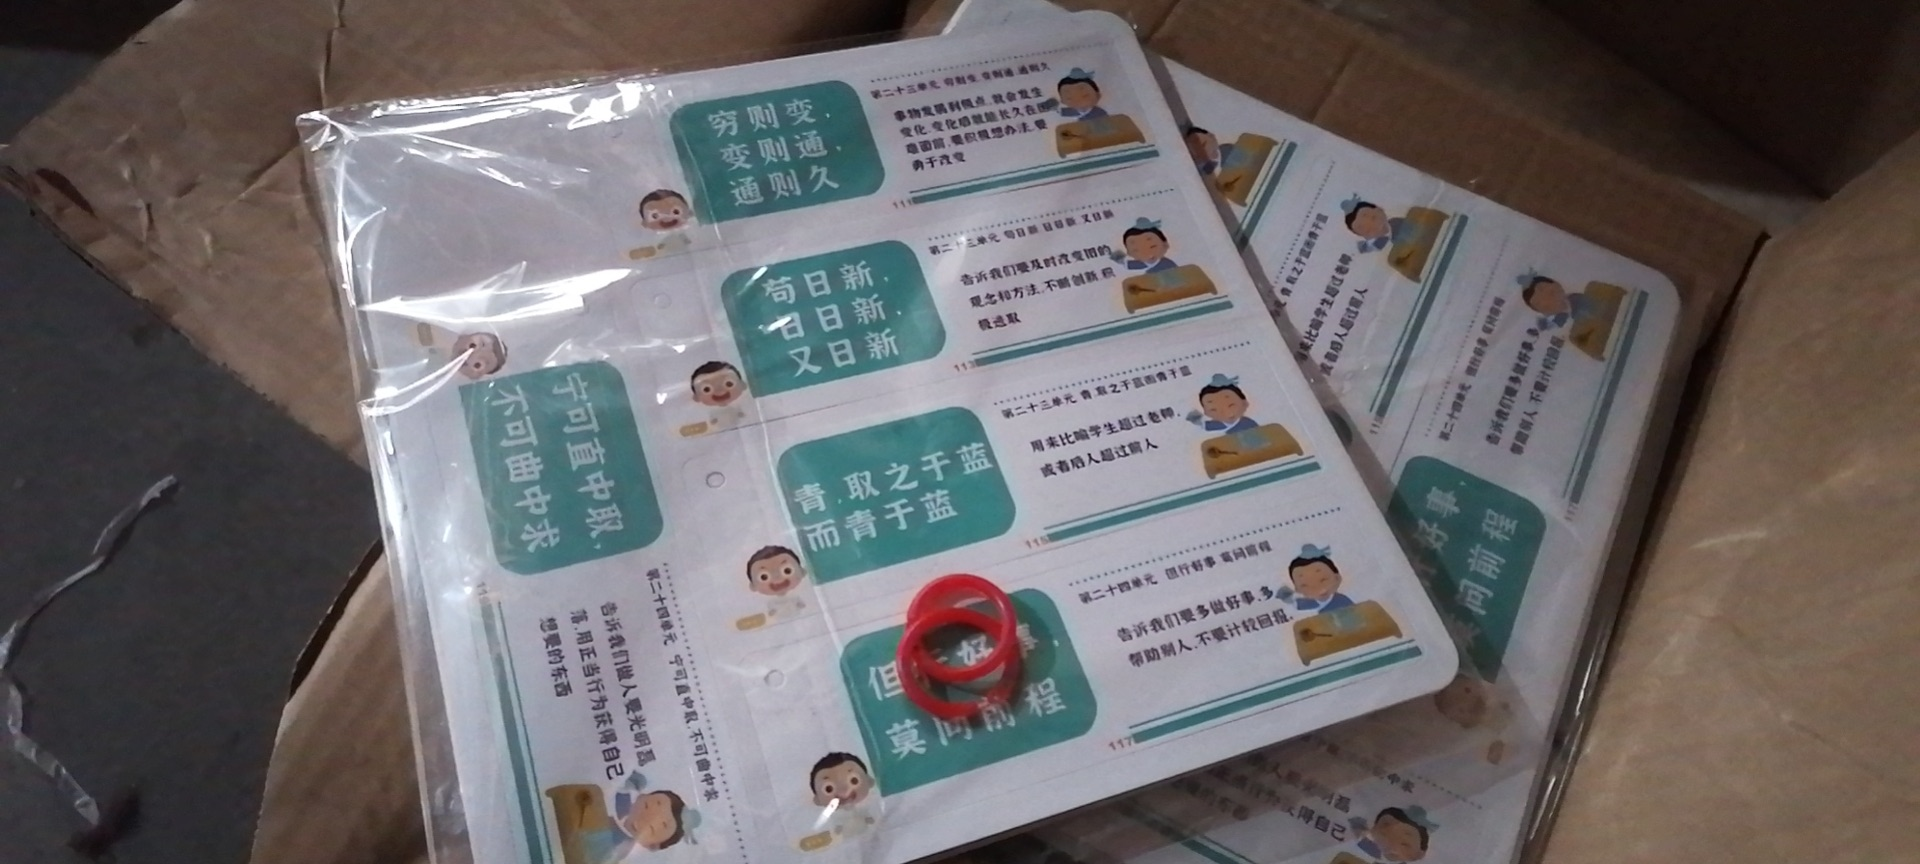 Chang dad 120 sentences of small ancient text parent-child children full set of enlightenment courses synchronized student audio point reading card children